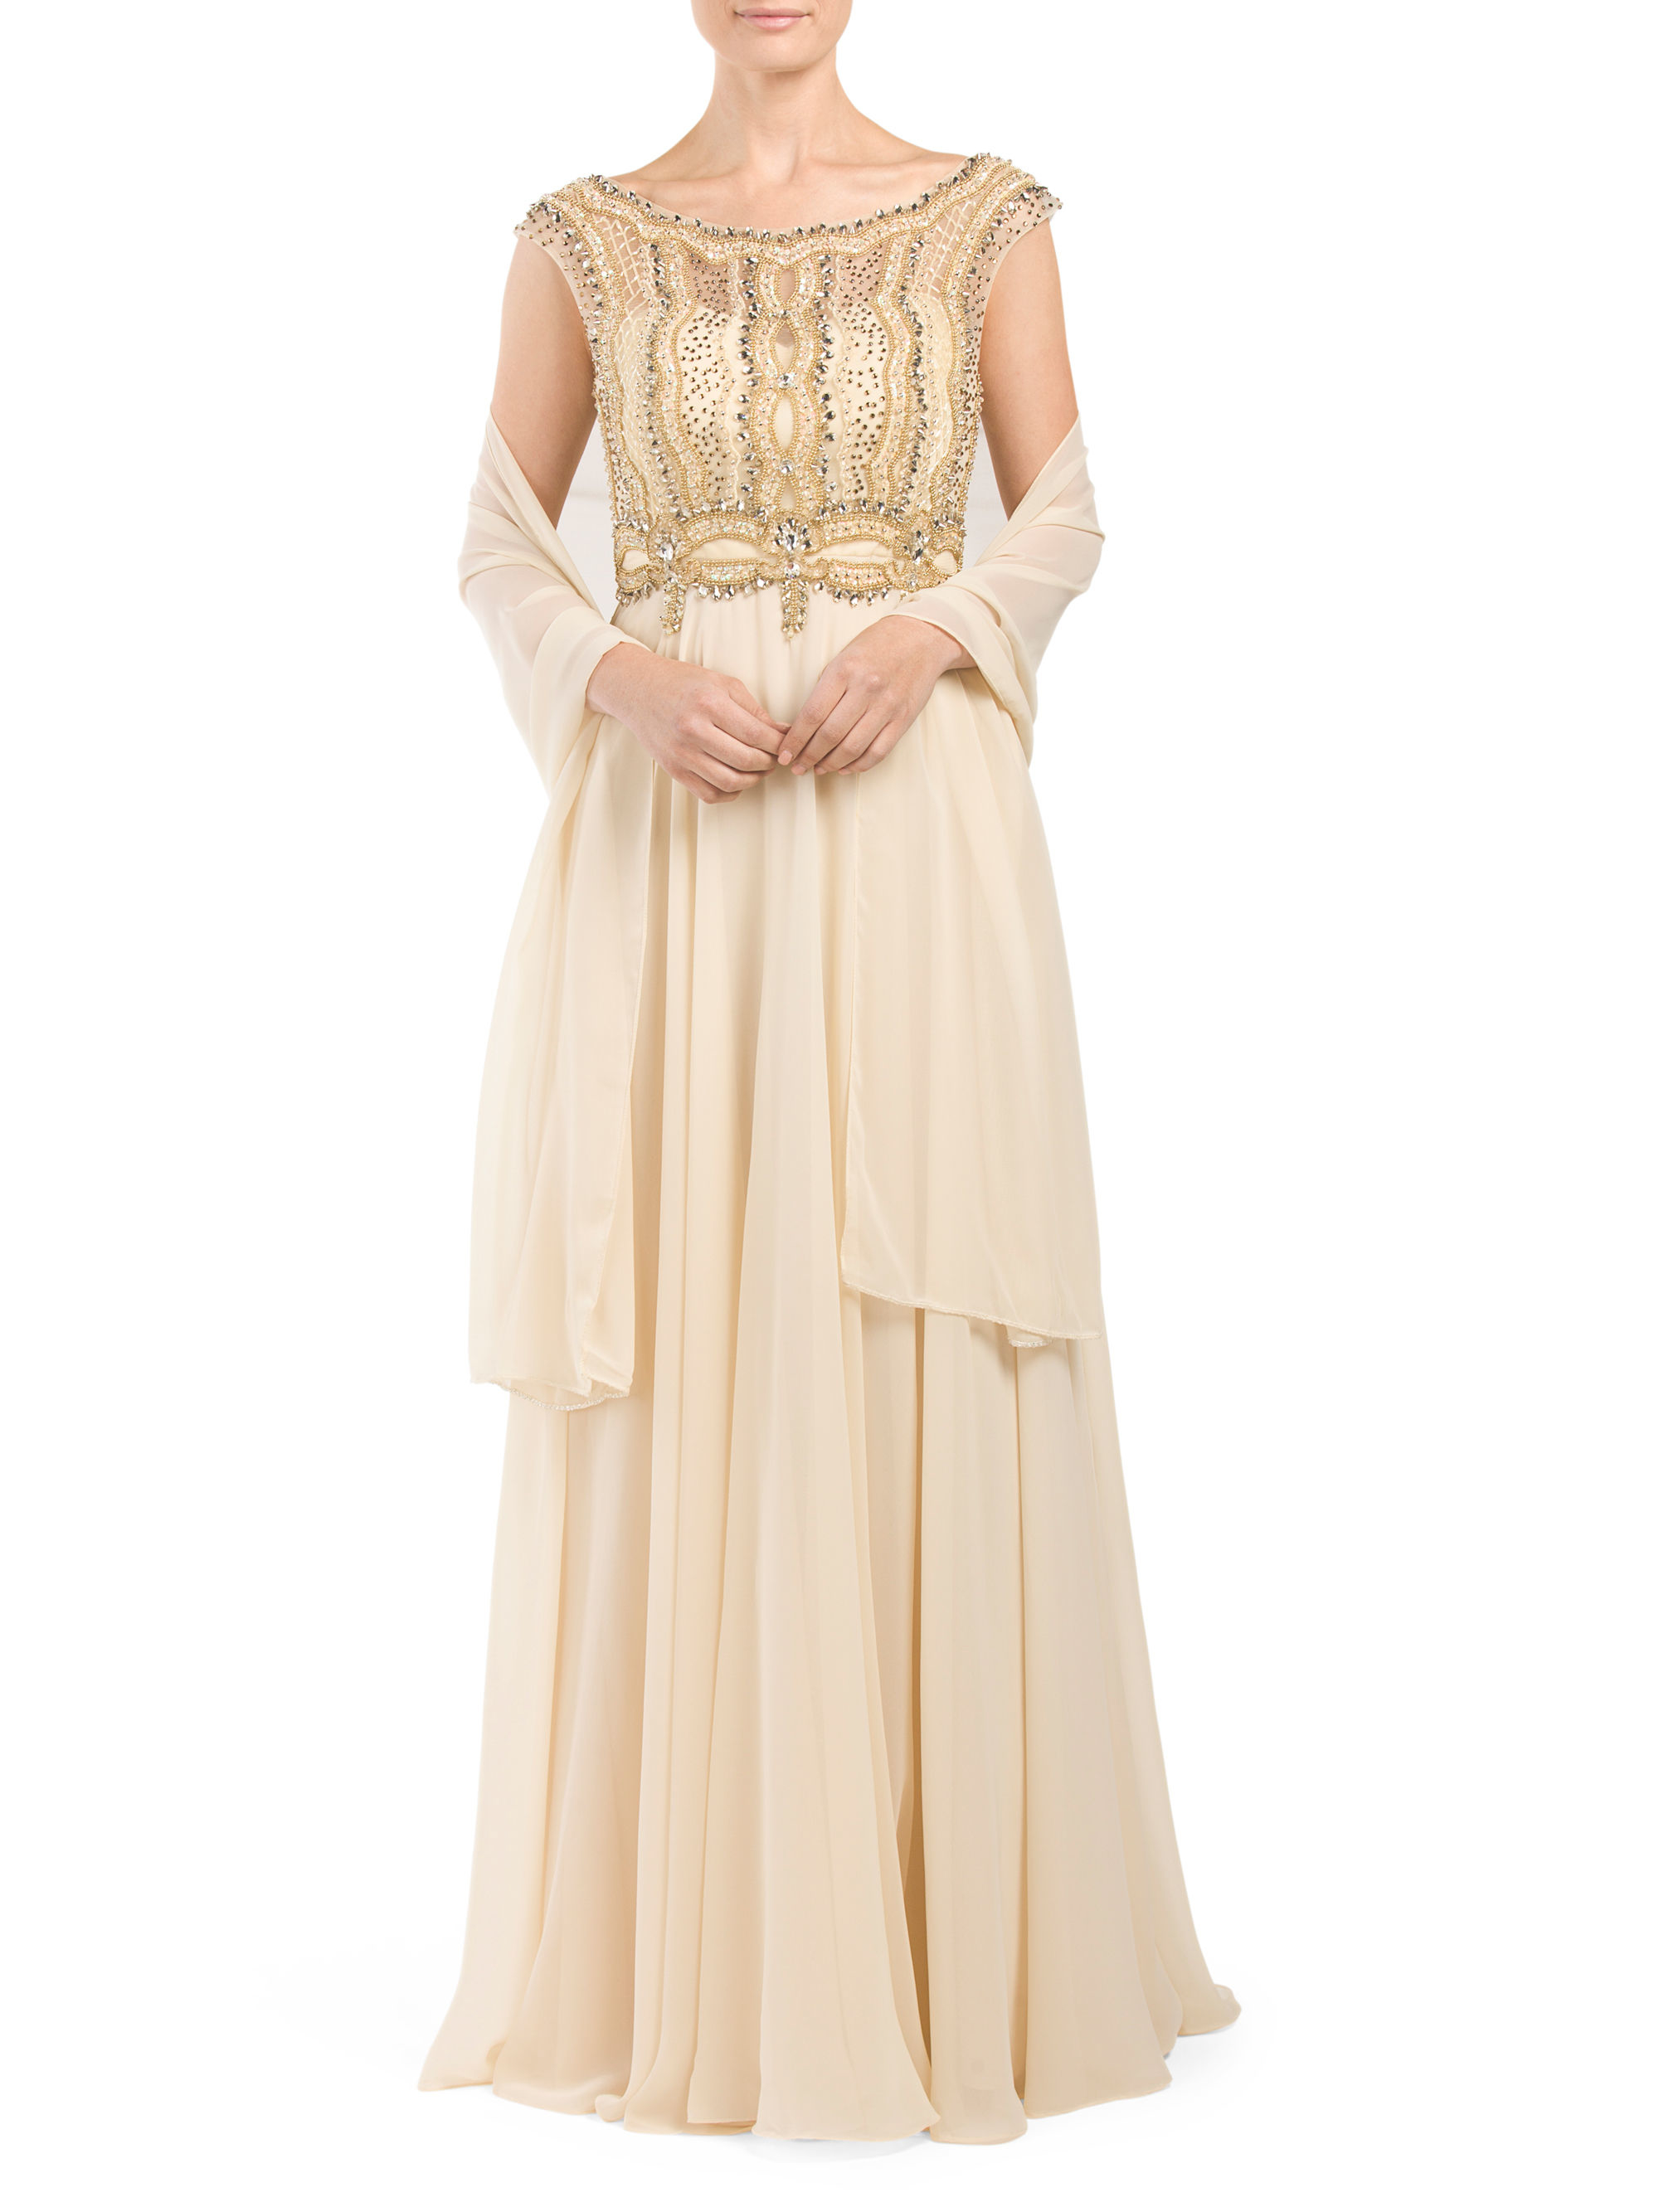 Tj maxx bridal beaded long chiffon gown in natural lyst for Tj maxx wedding guest dresses